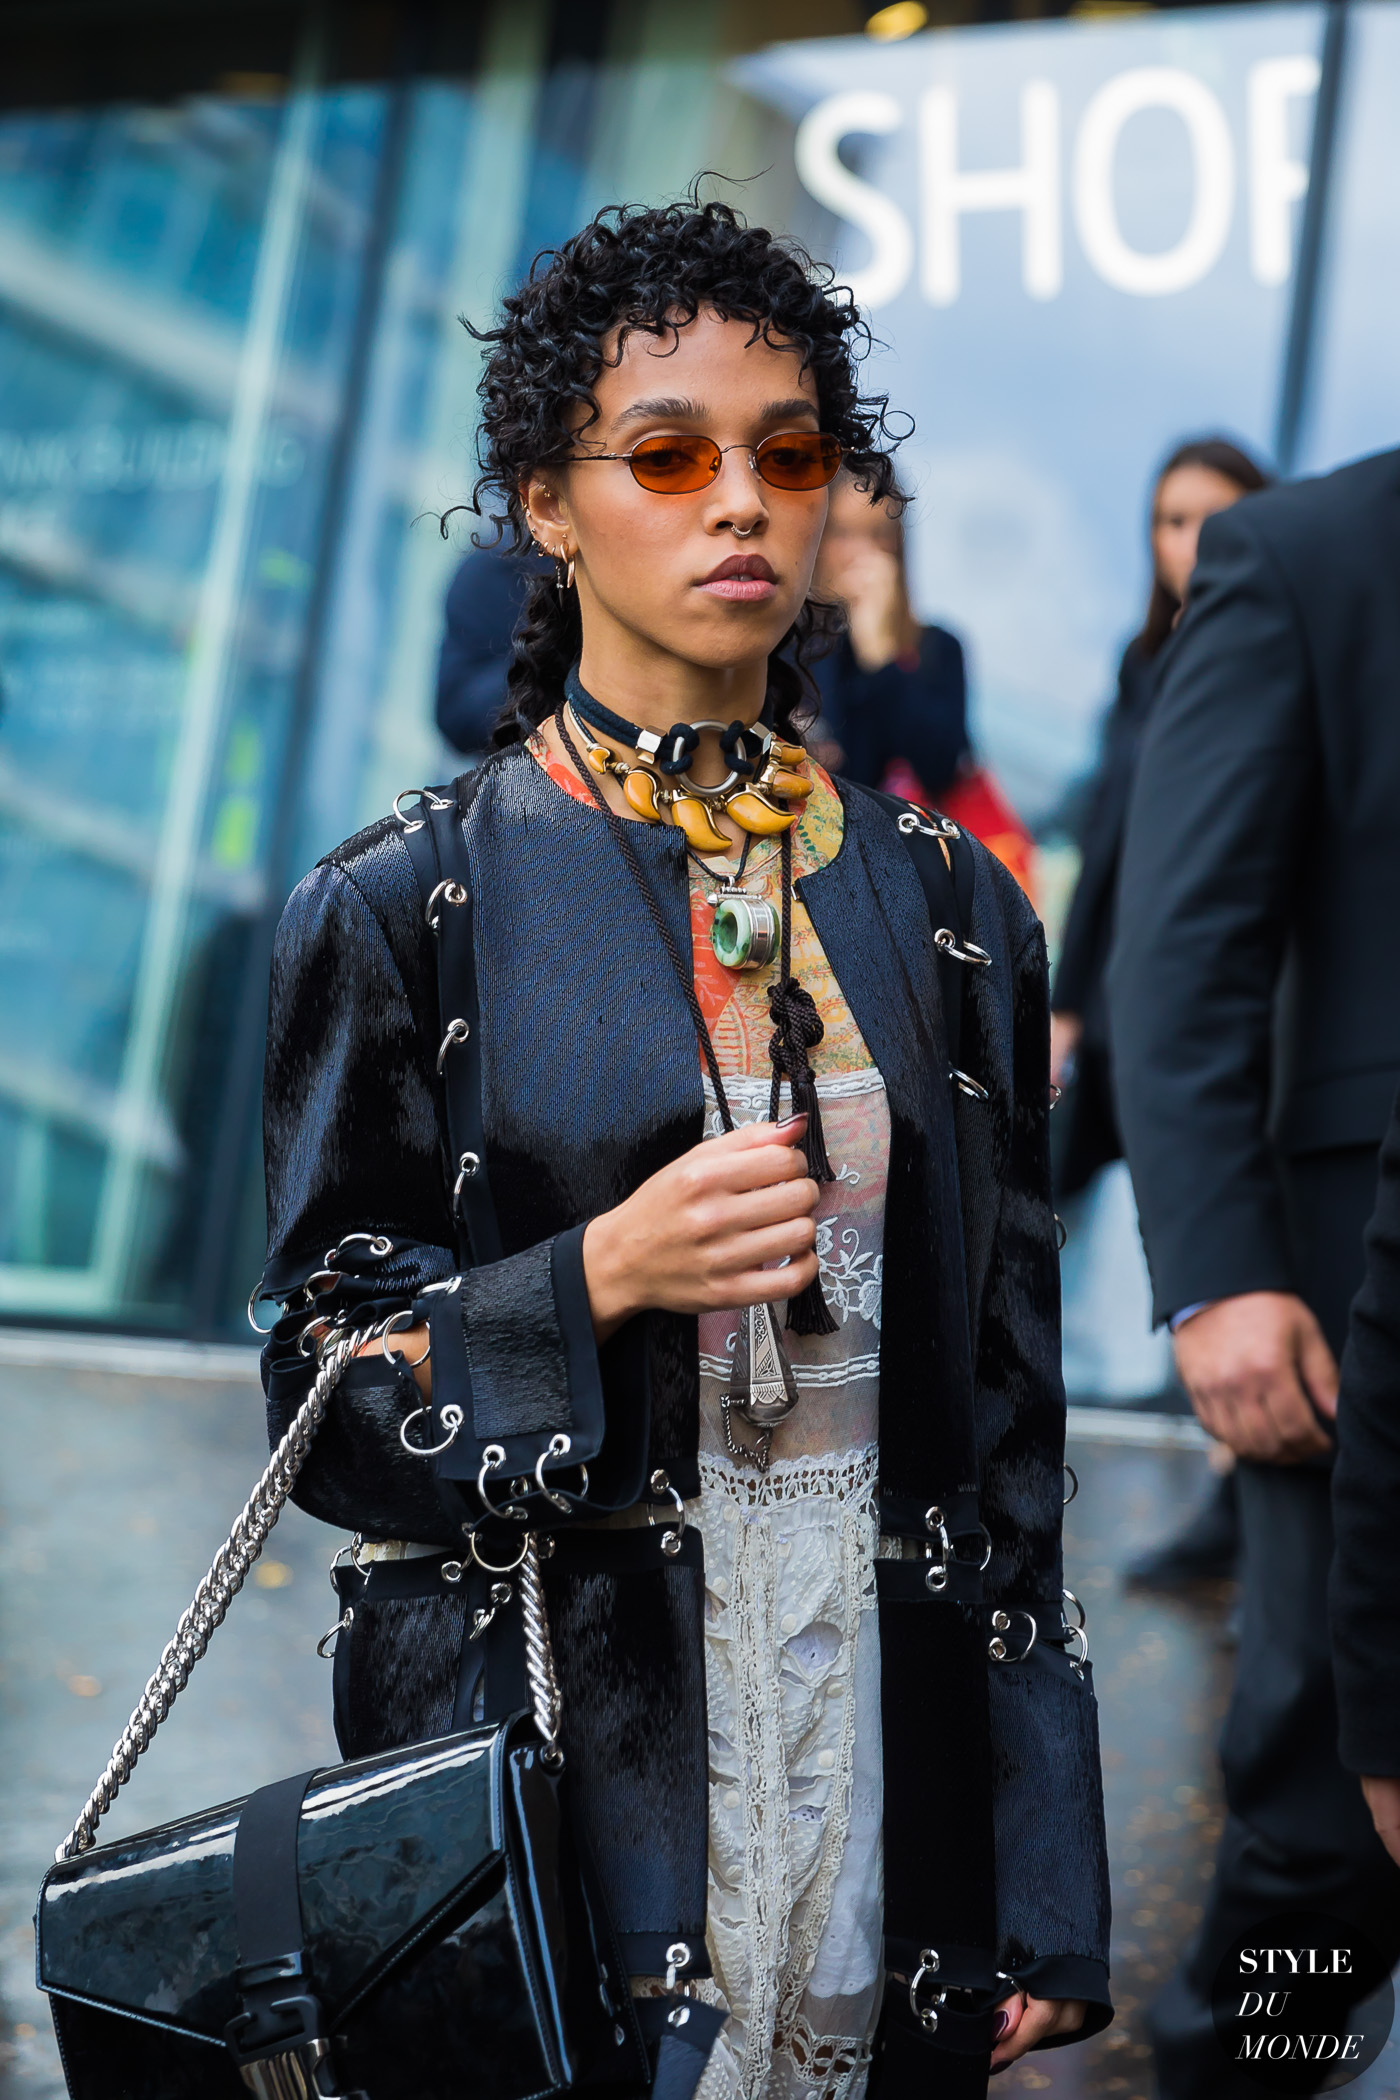 FKA Twigs by STYLEDUMONDE Street Style Fashion Photography